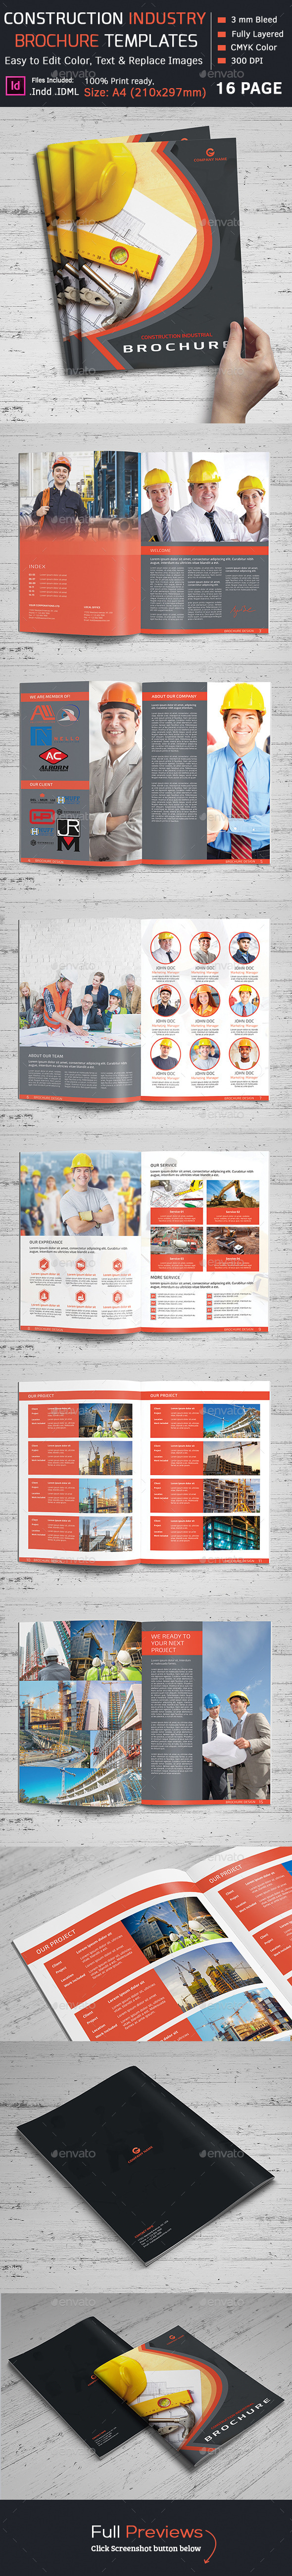 Construction Brochure Graphics Designs Templates - Construction brochure templates